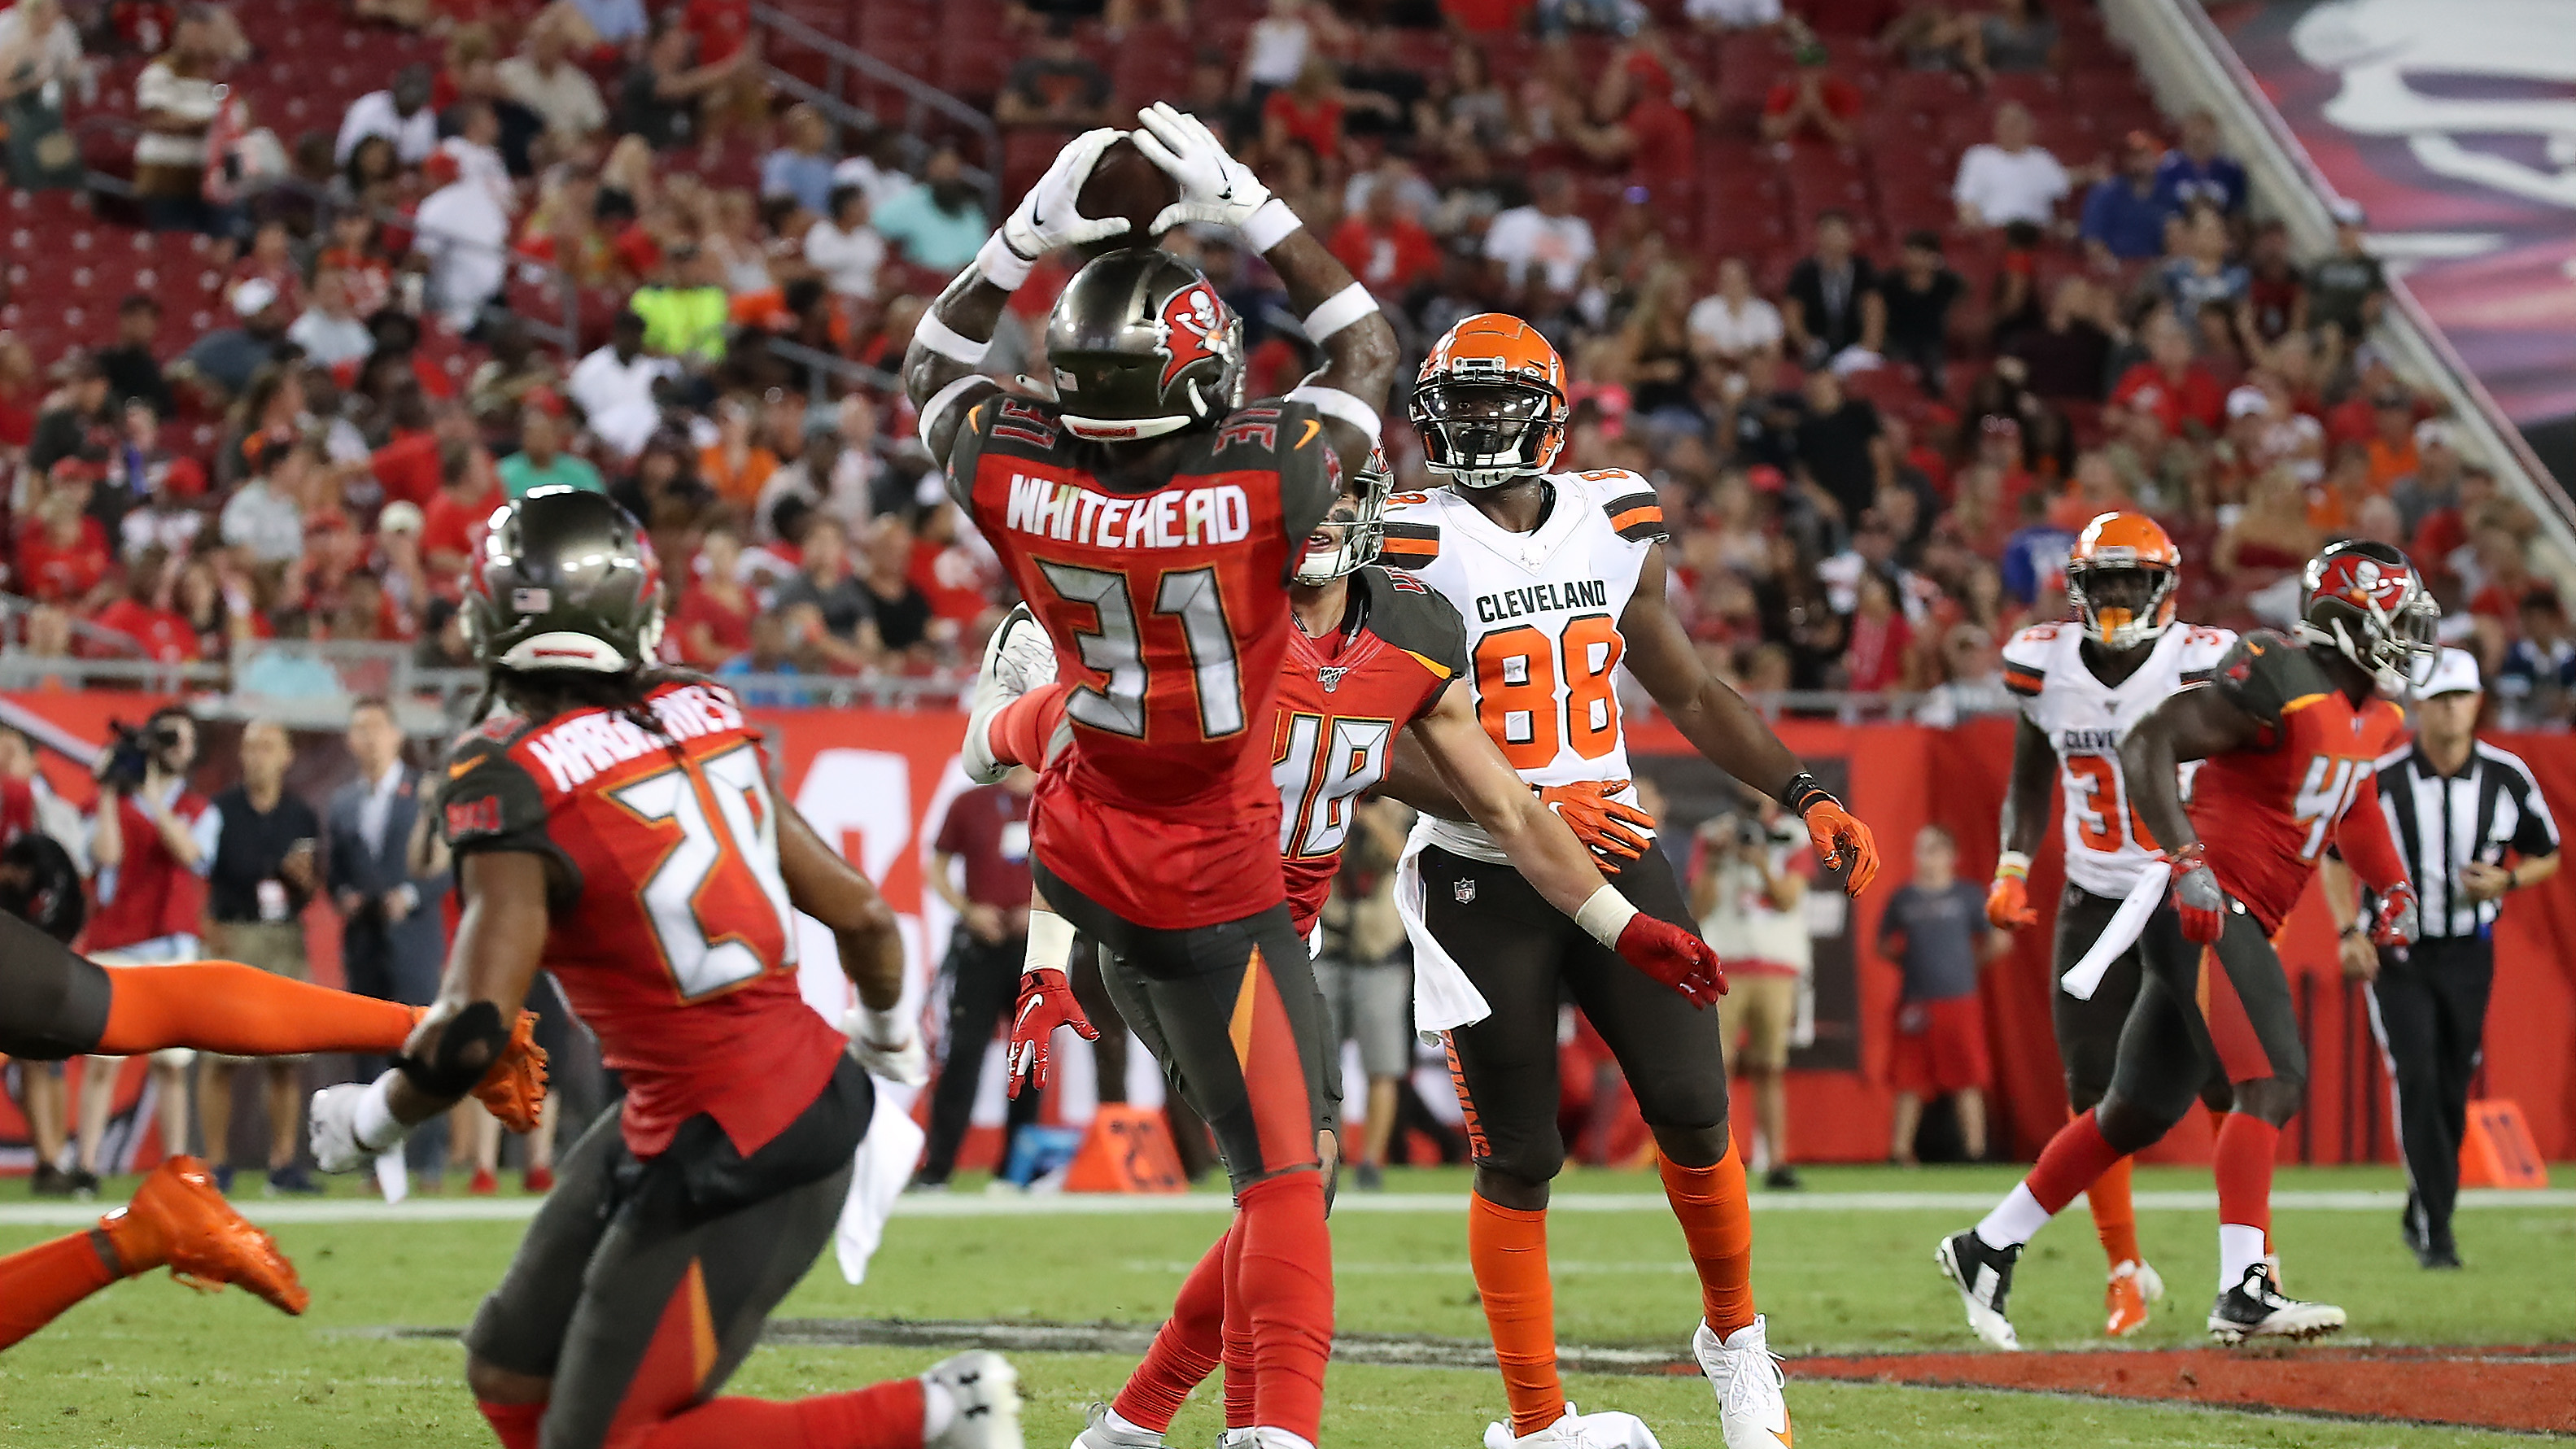 Buccaneers edge Browns 13-12 behind K Matt Gay's game-winner